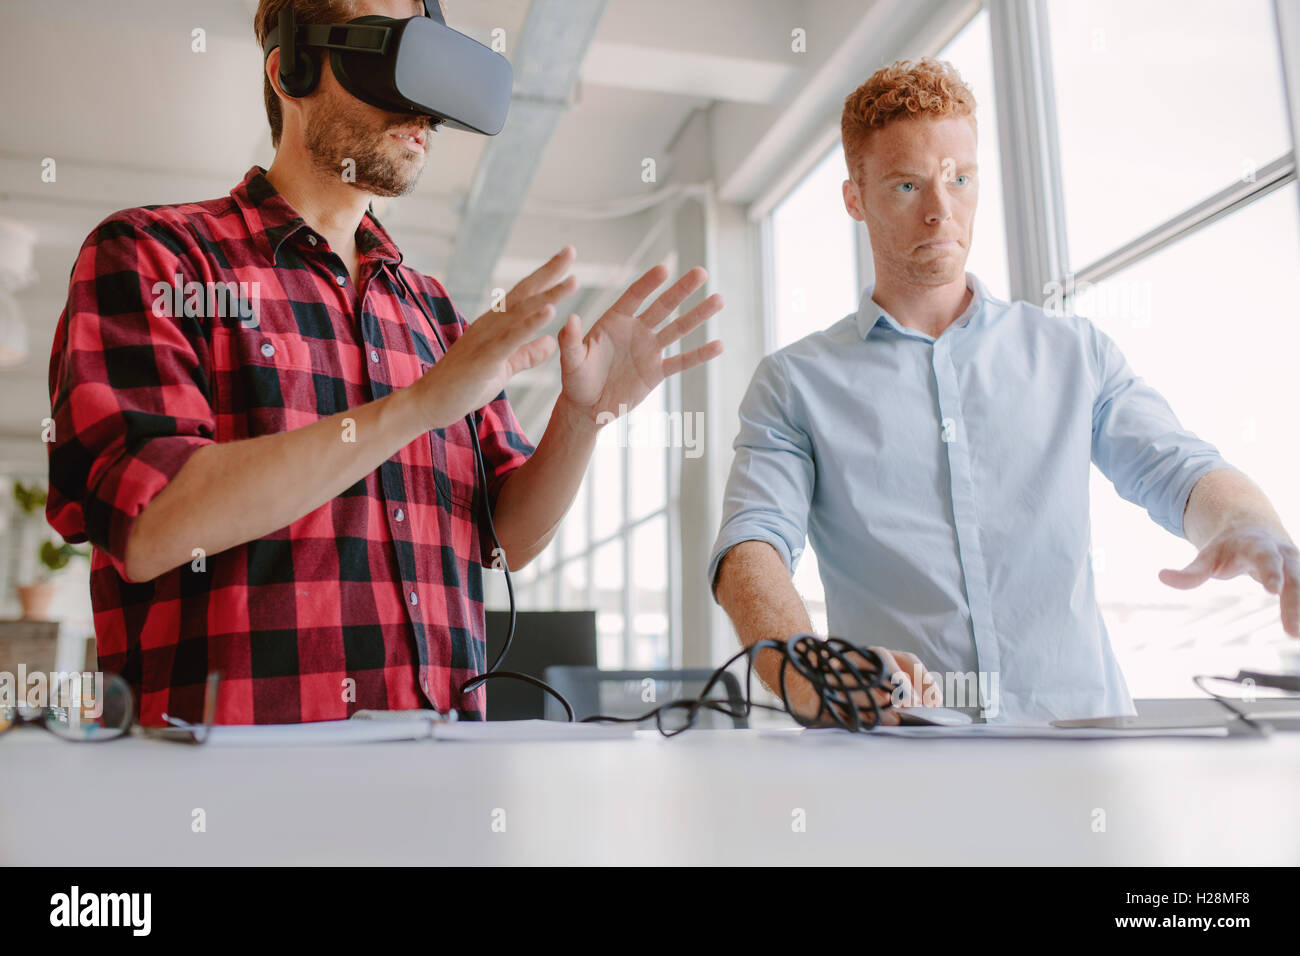 Developers testing an augmented reality device with a broad range of uses from gaming to visual aid. Young man wearing - Stock Image